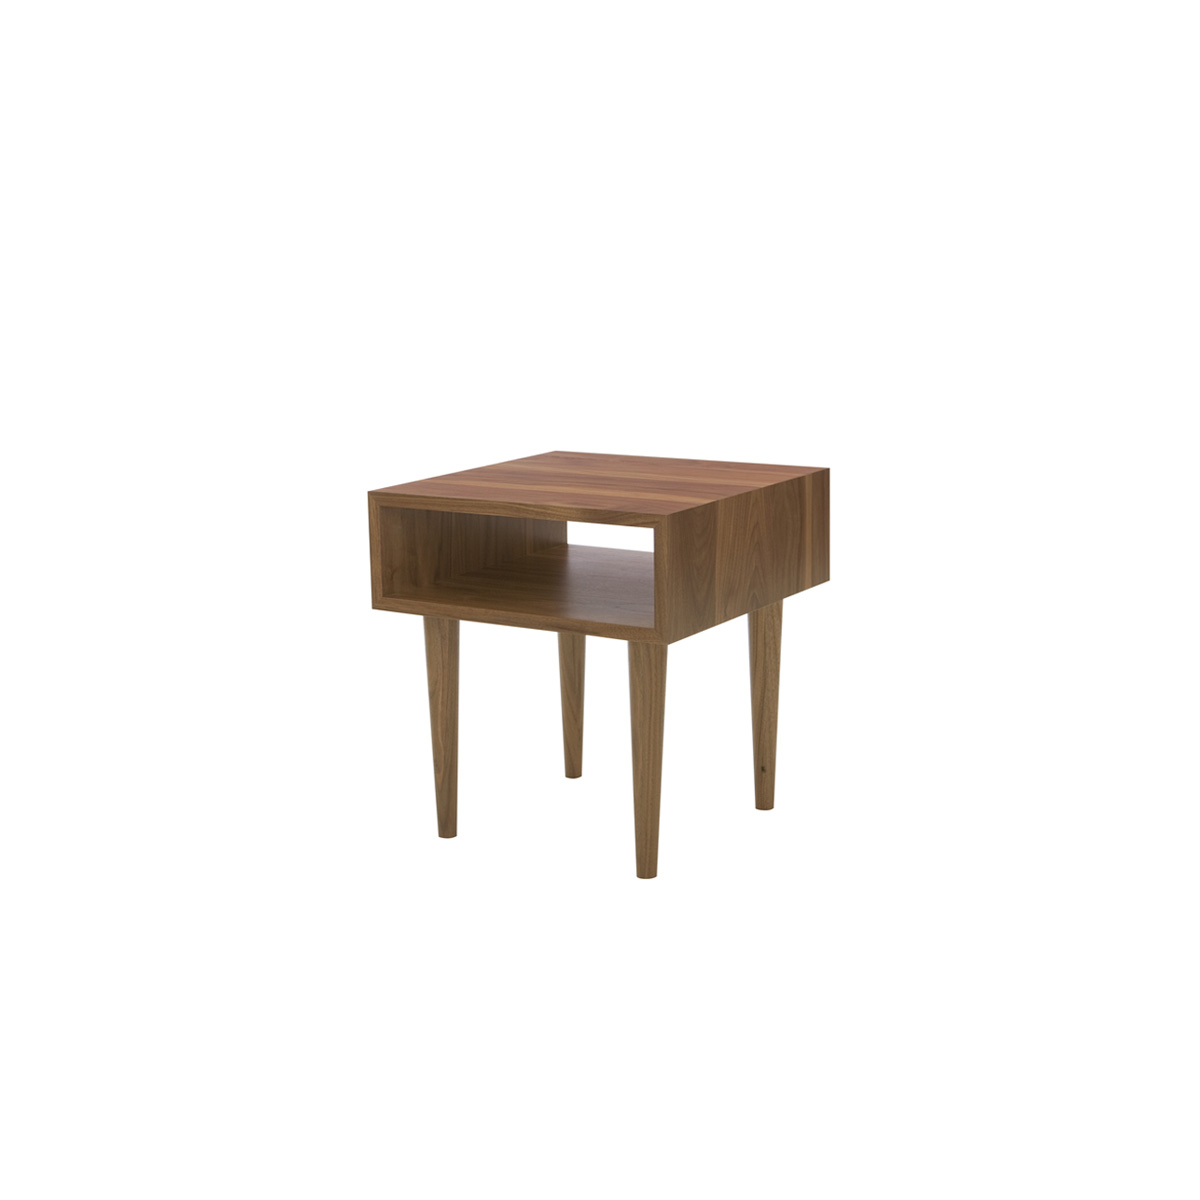 Classic walnut midcentury modern inspired side table with storage